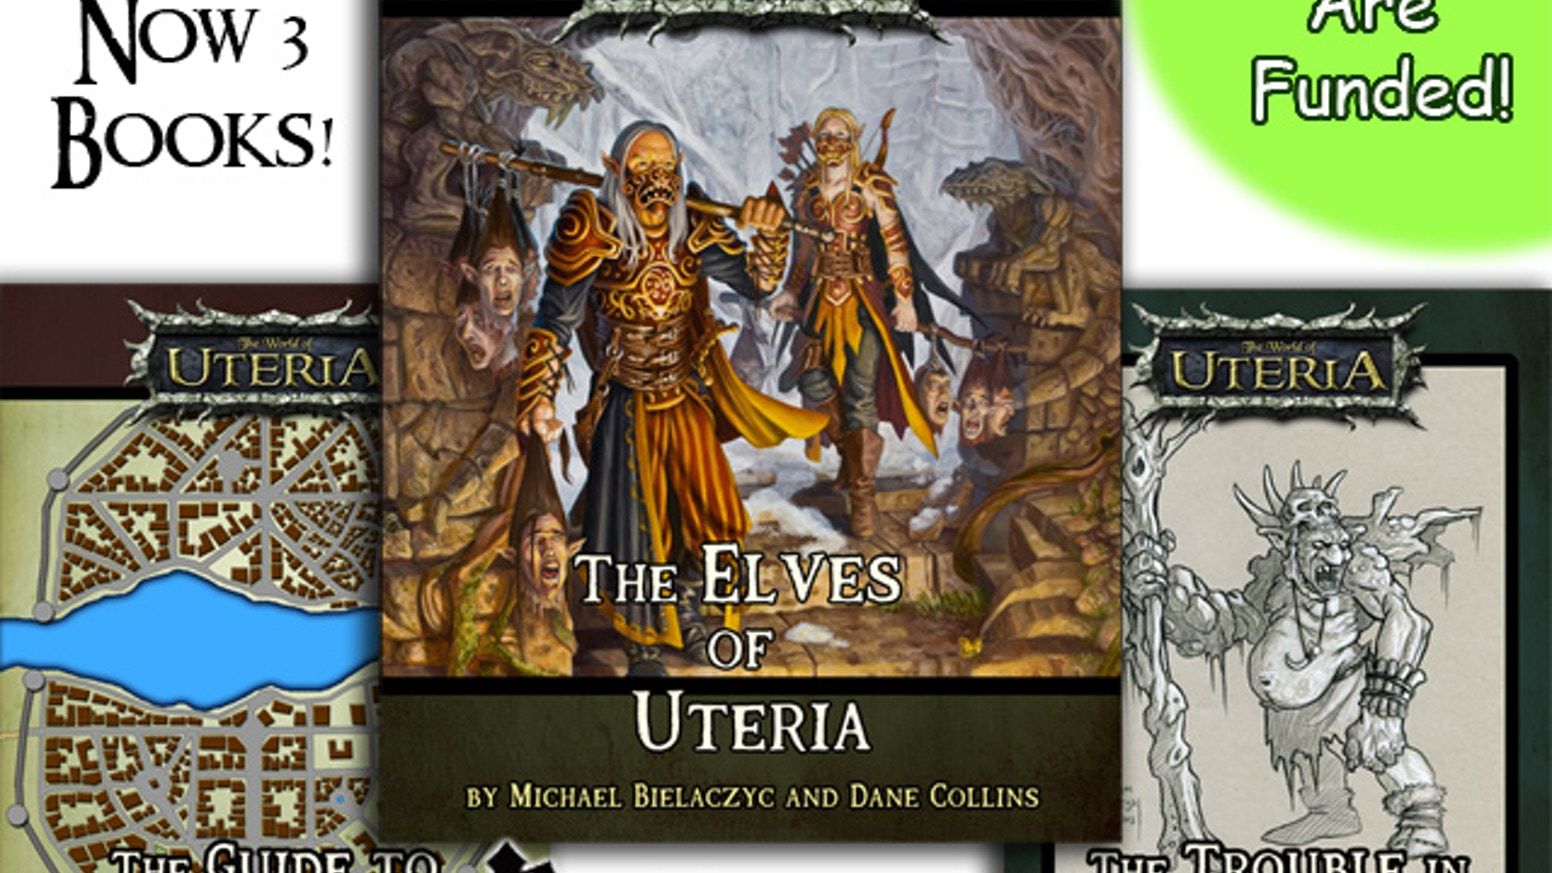 A story based source book for Tabletop roleplaying with new versions of elves based in the World of Uteria.